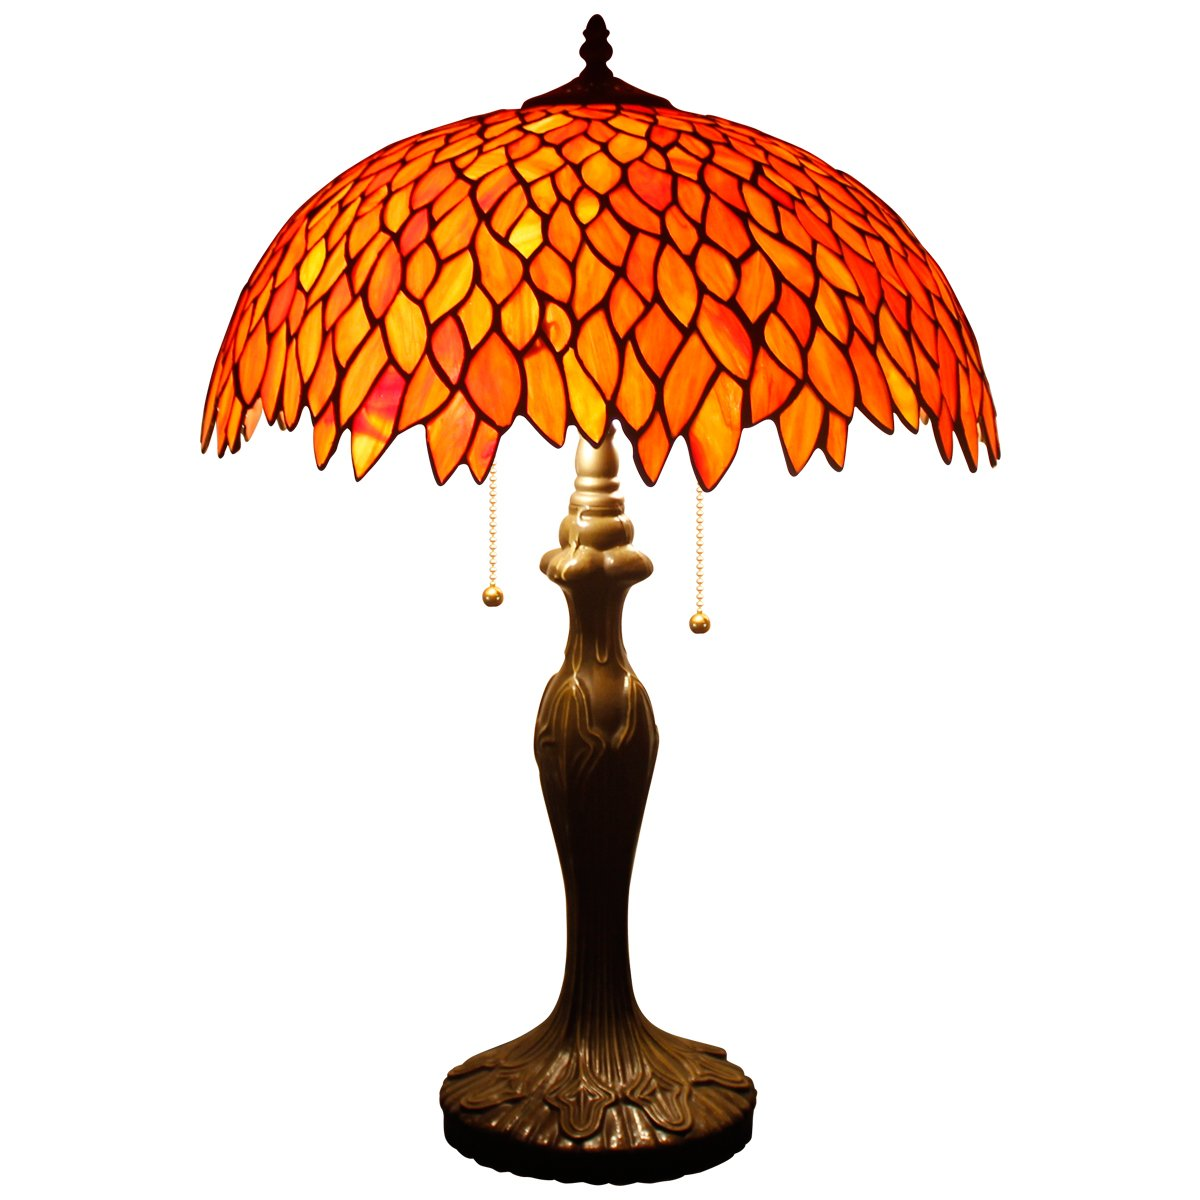 Tiffany Table Lamp Stained Glass Style Beside Desk Lamps 24 Inch Tall 2 Light Pull Chain Red Wisteria Lampshade Antique Base for Living Room Coffee Table Bedroom S523R WERFACTORY